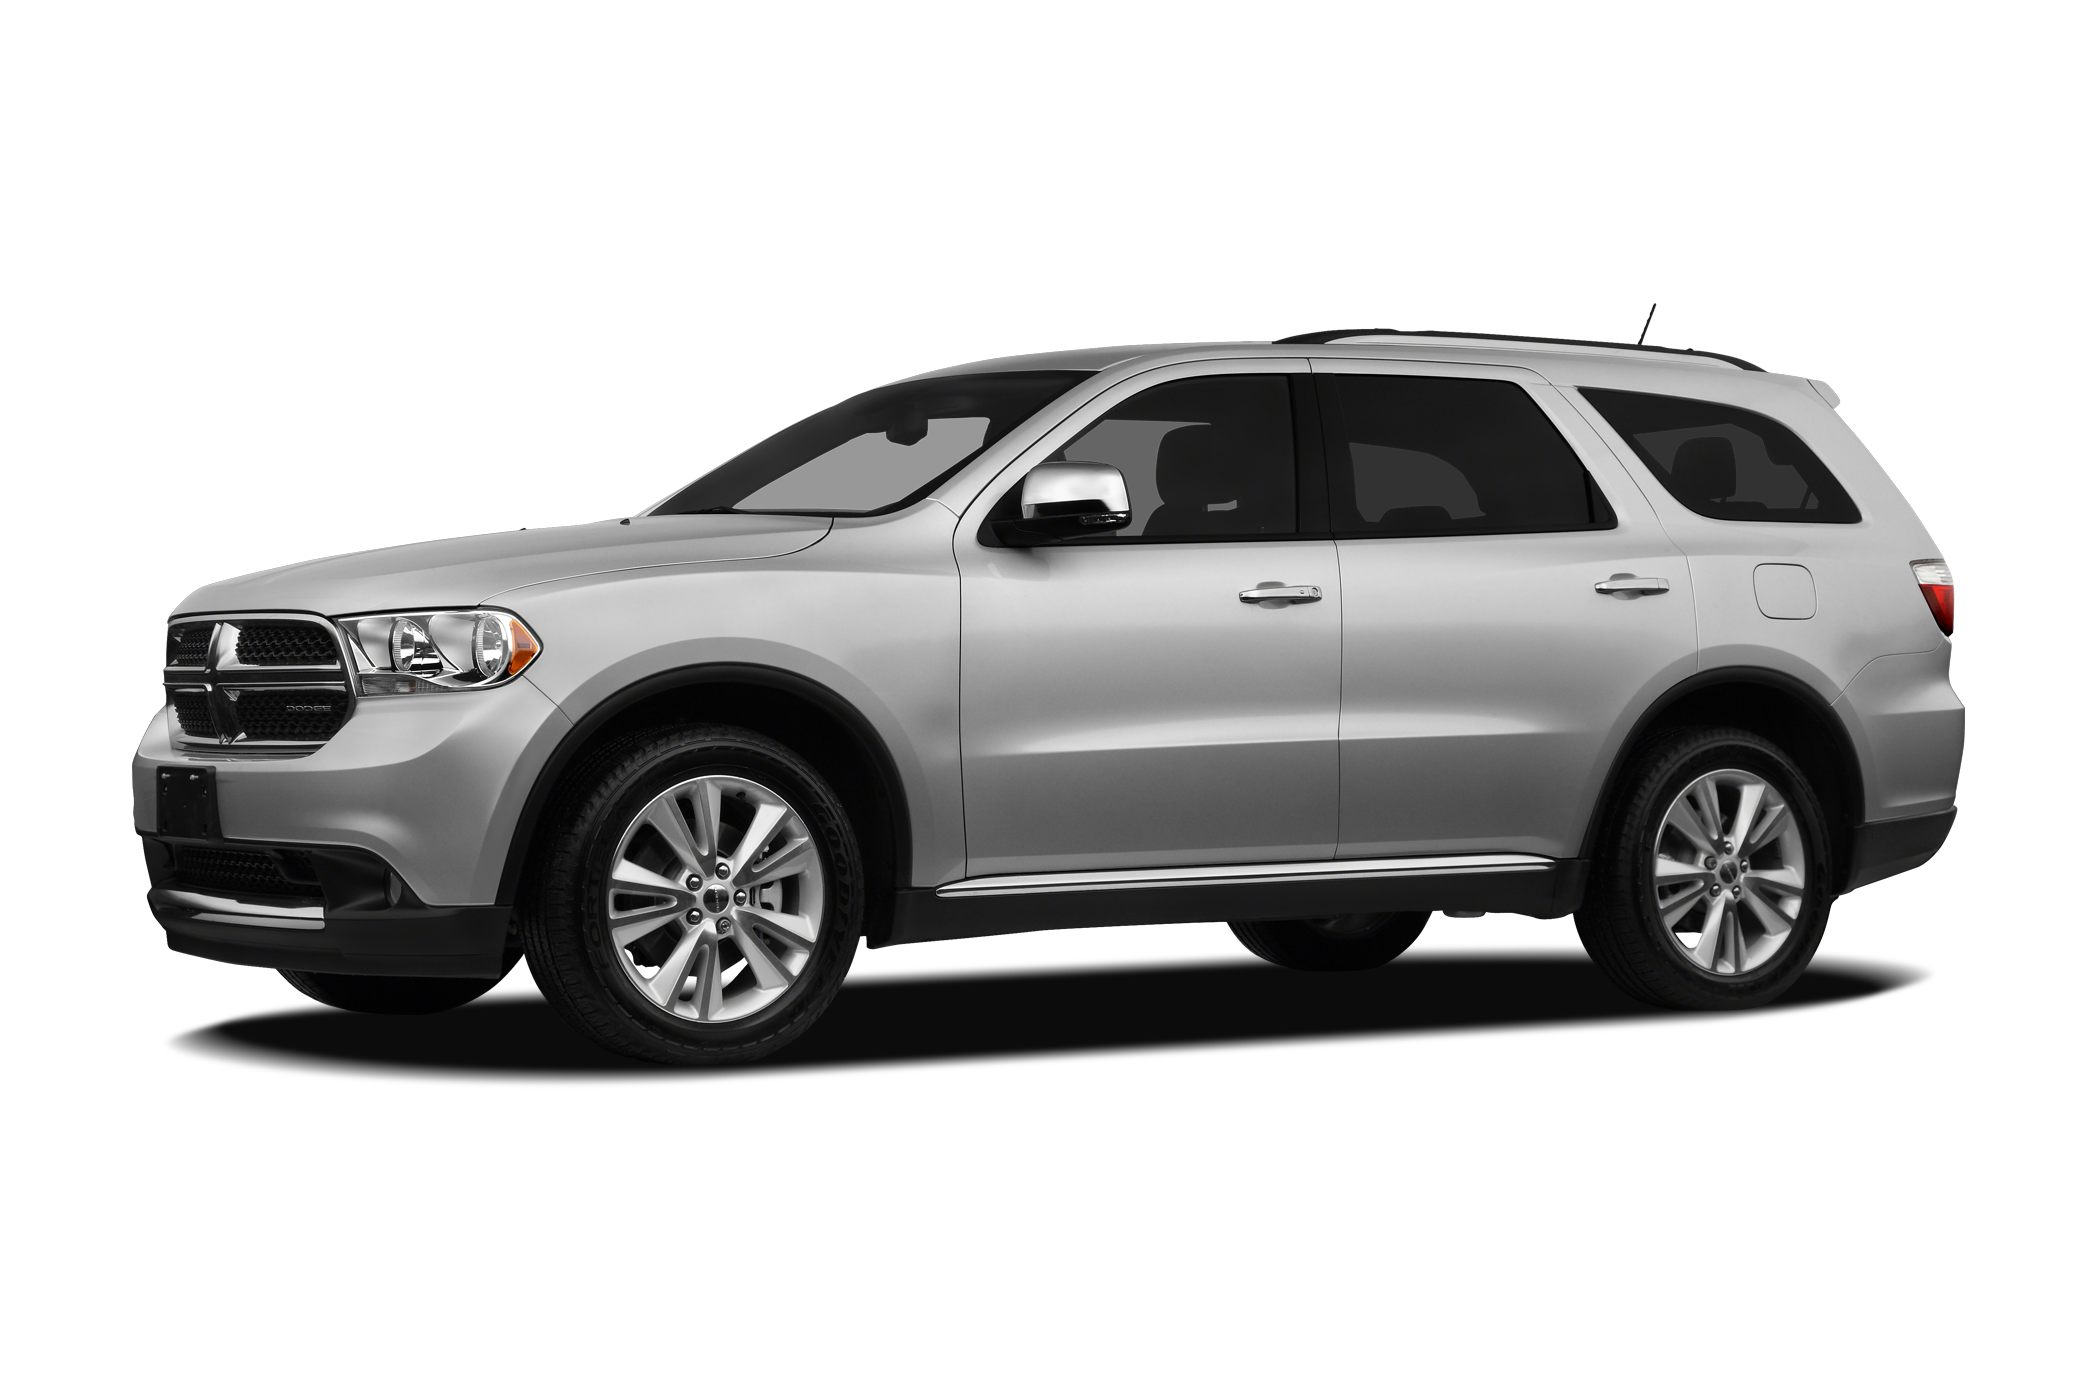 2012 jeep grand cherokee reviews autoblog and new car test drive. Black Bedroom Furniture Sets. Home Design Ideas